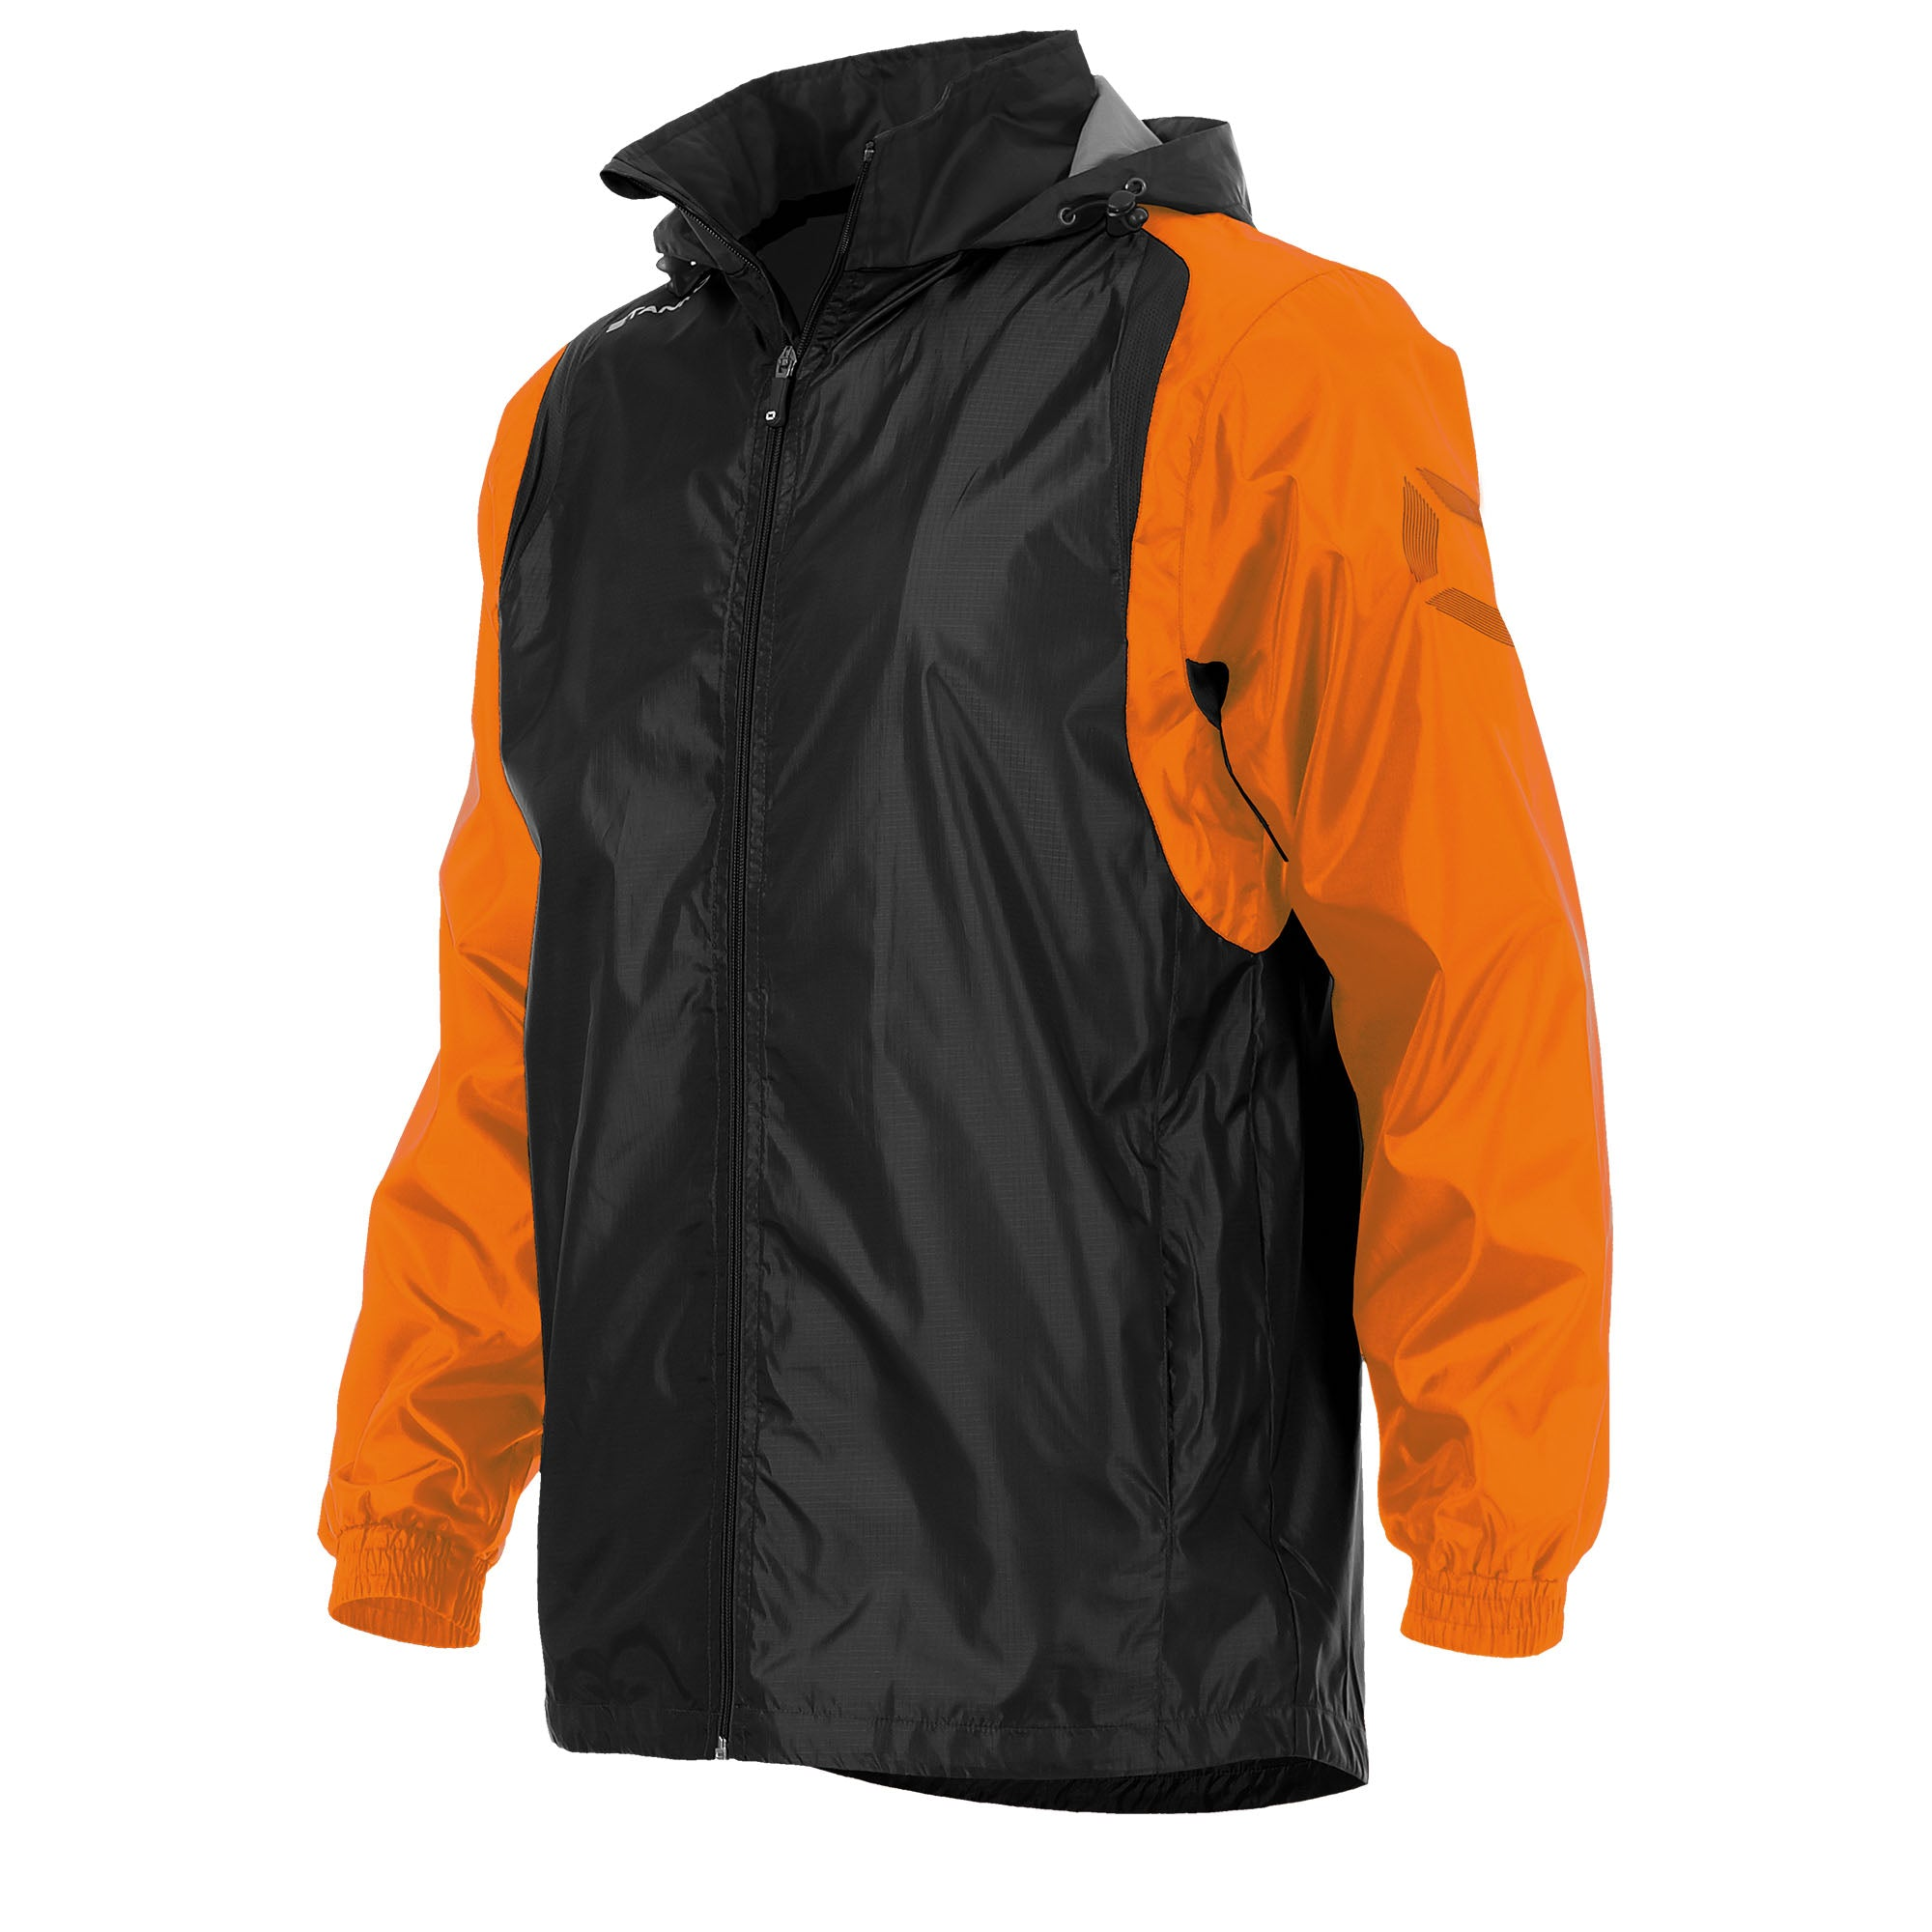 Front of Stanno Centro windbreaker in black with orange contrast sleeve and Stanno printed logo